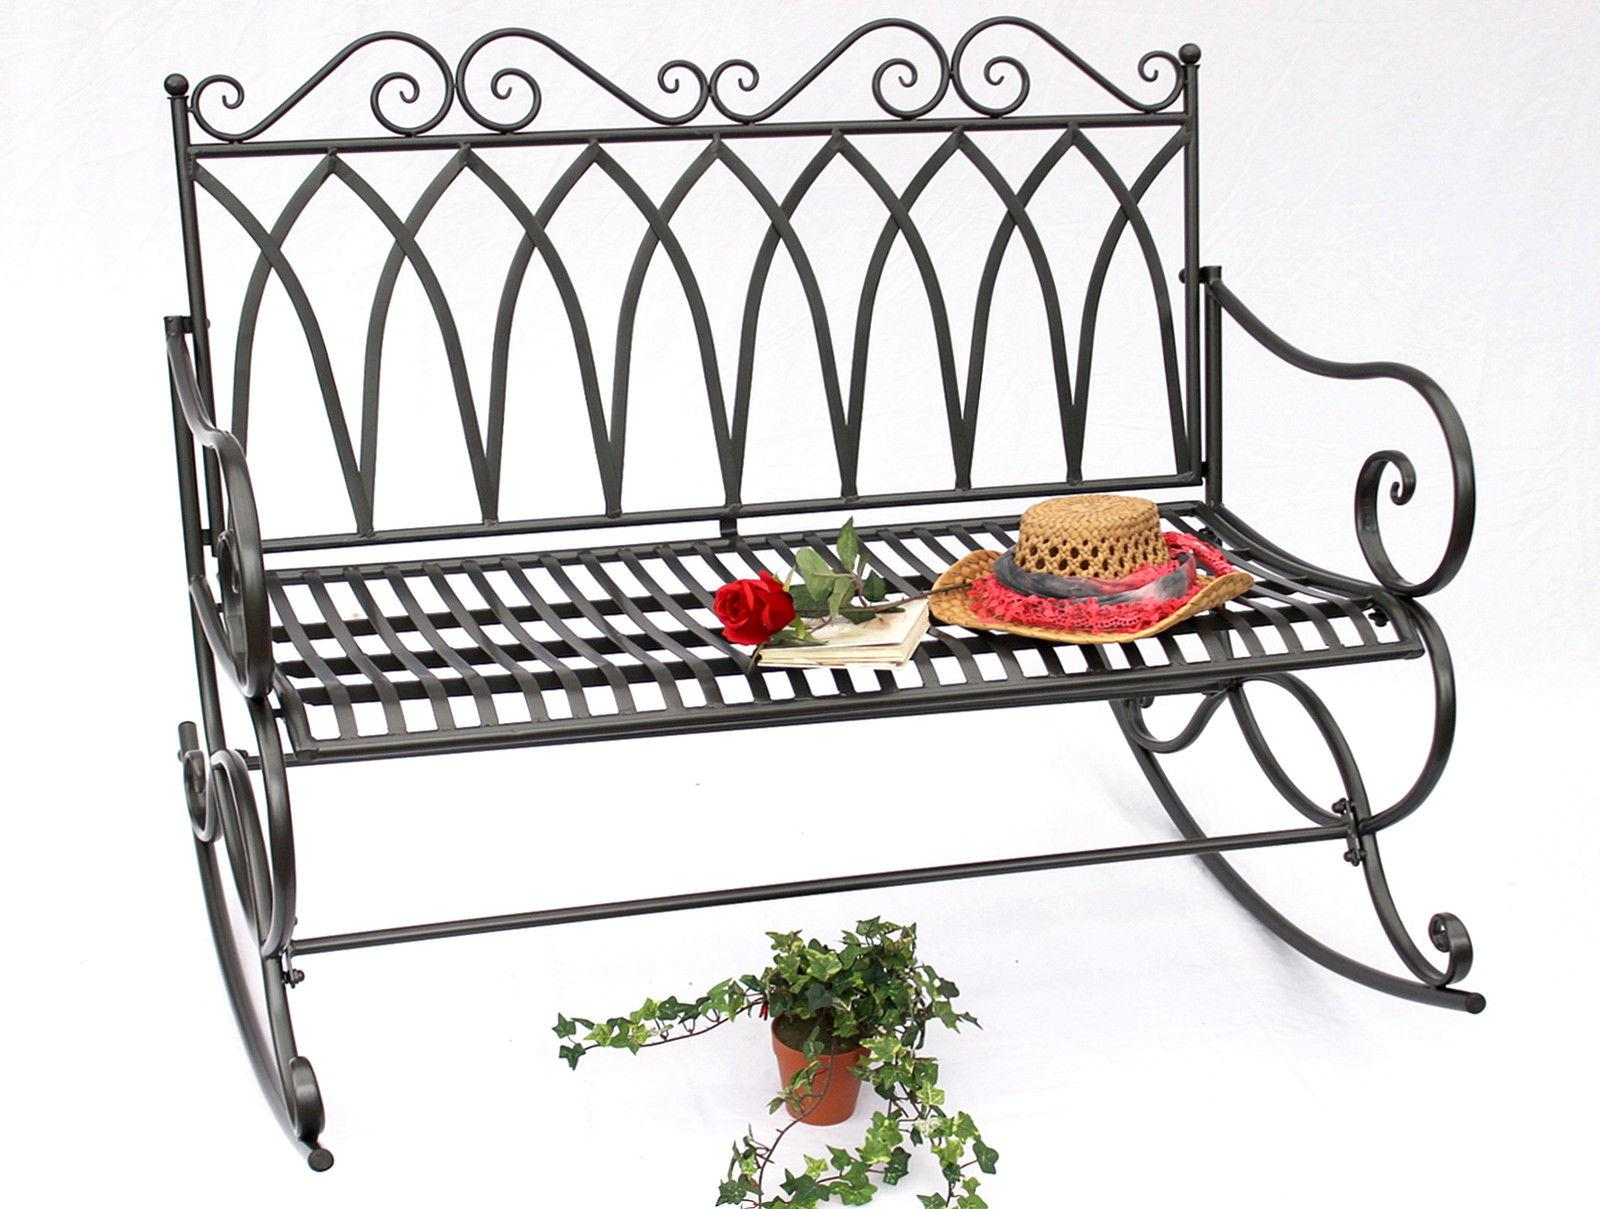 schaukelbank 132730 gartenbank aus metall bank 112 cm sitzbank garten schaukel ebay. Black Bedroom Furniture Sets. Home Design Ideas